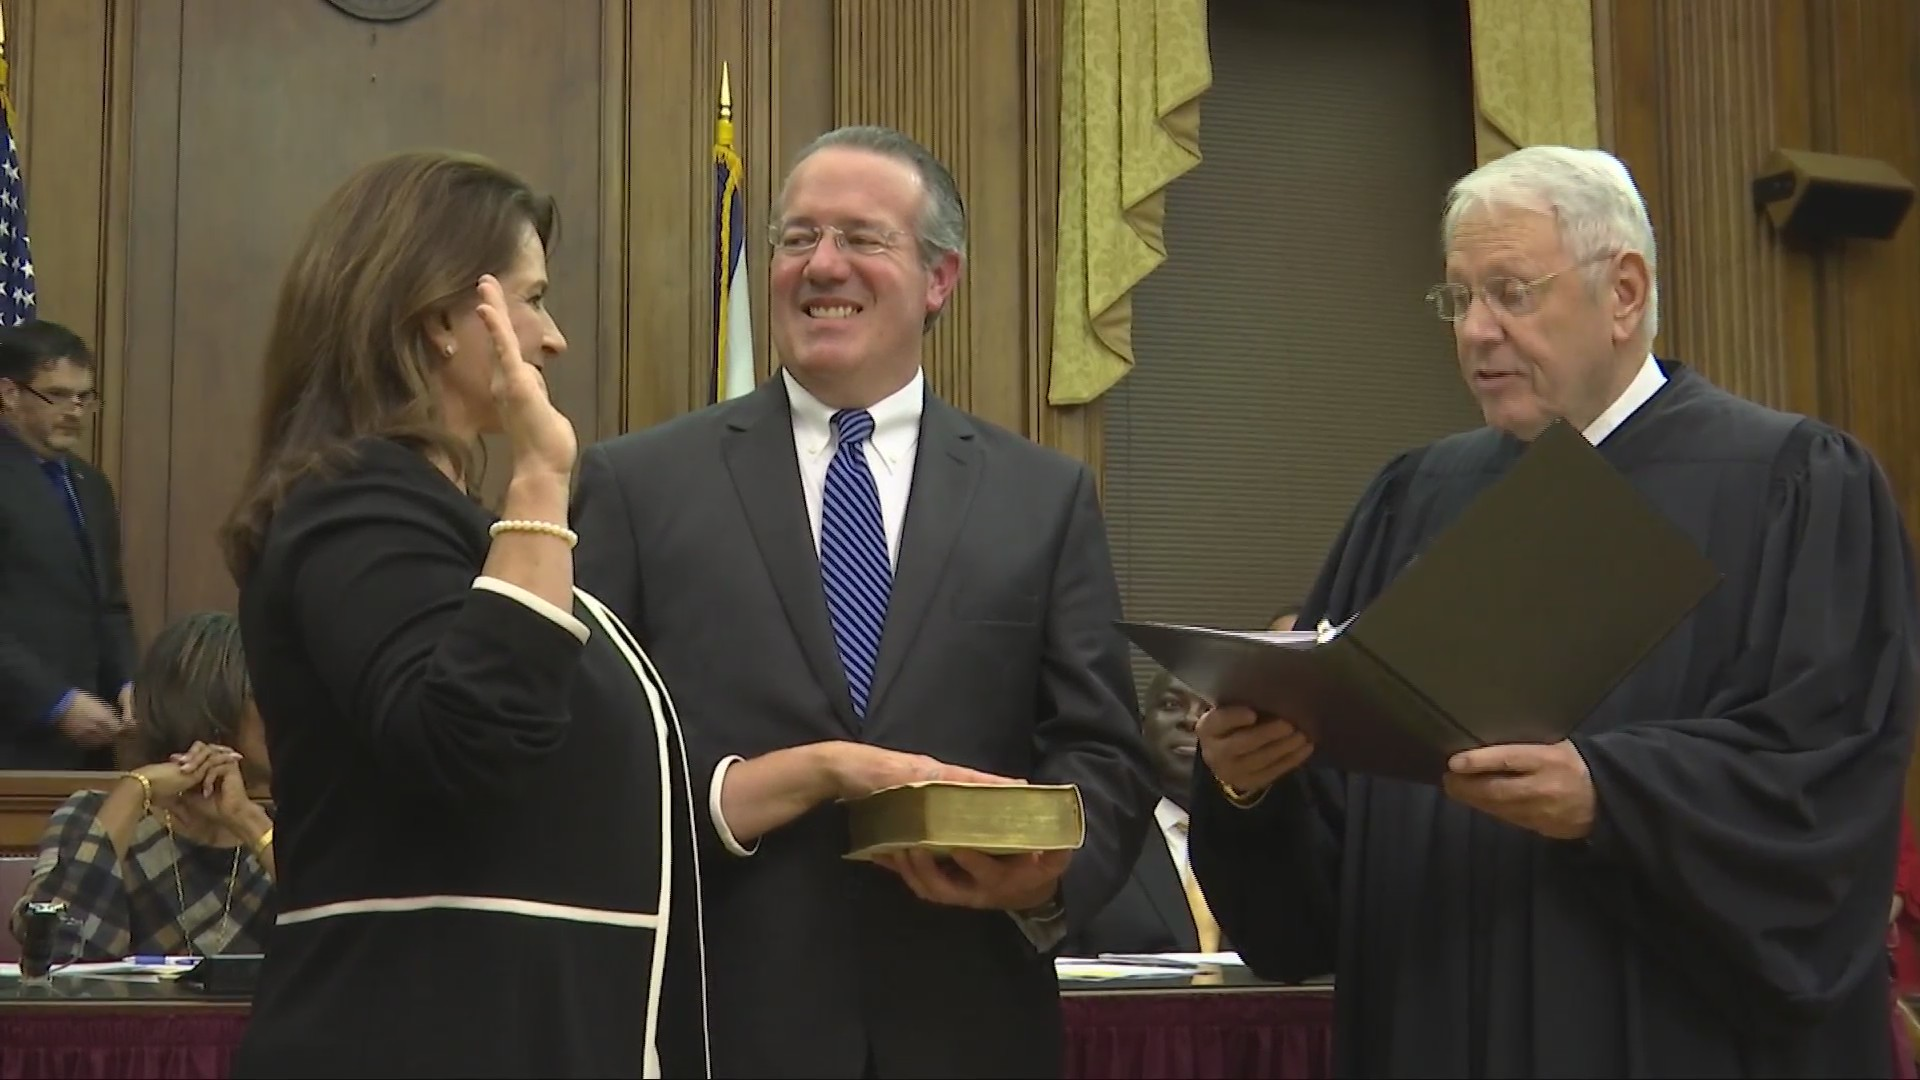 Amy Goodwin Paving the Way for Women in Charleston Politics